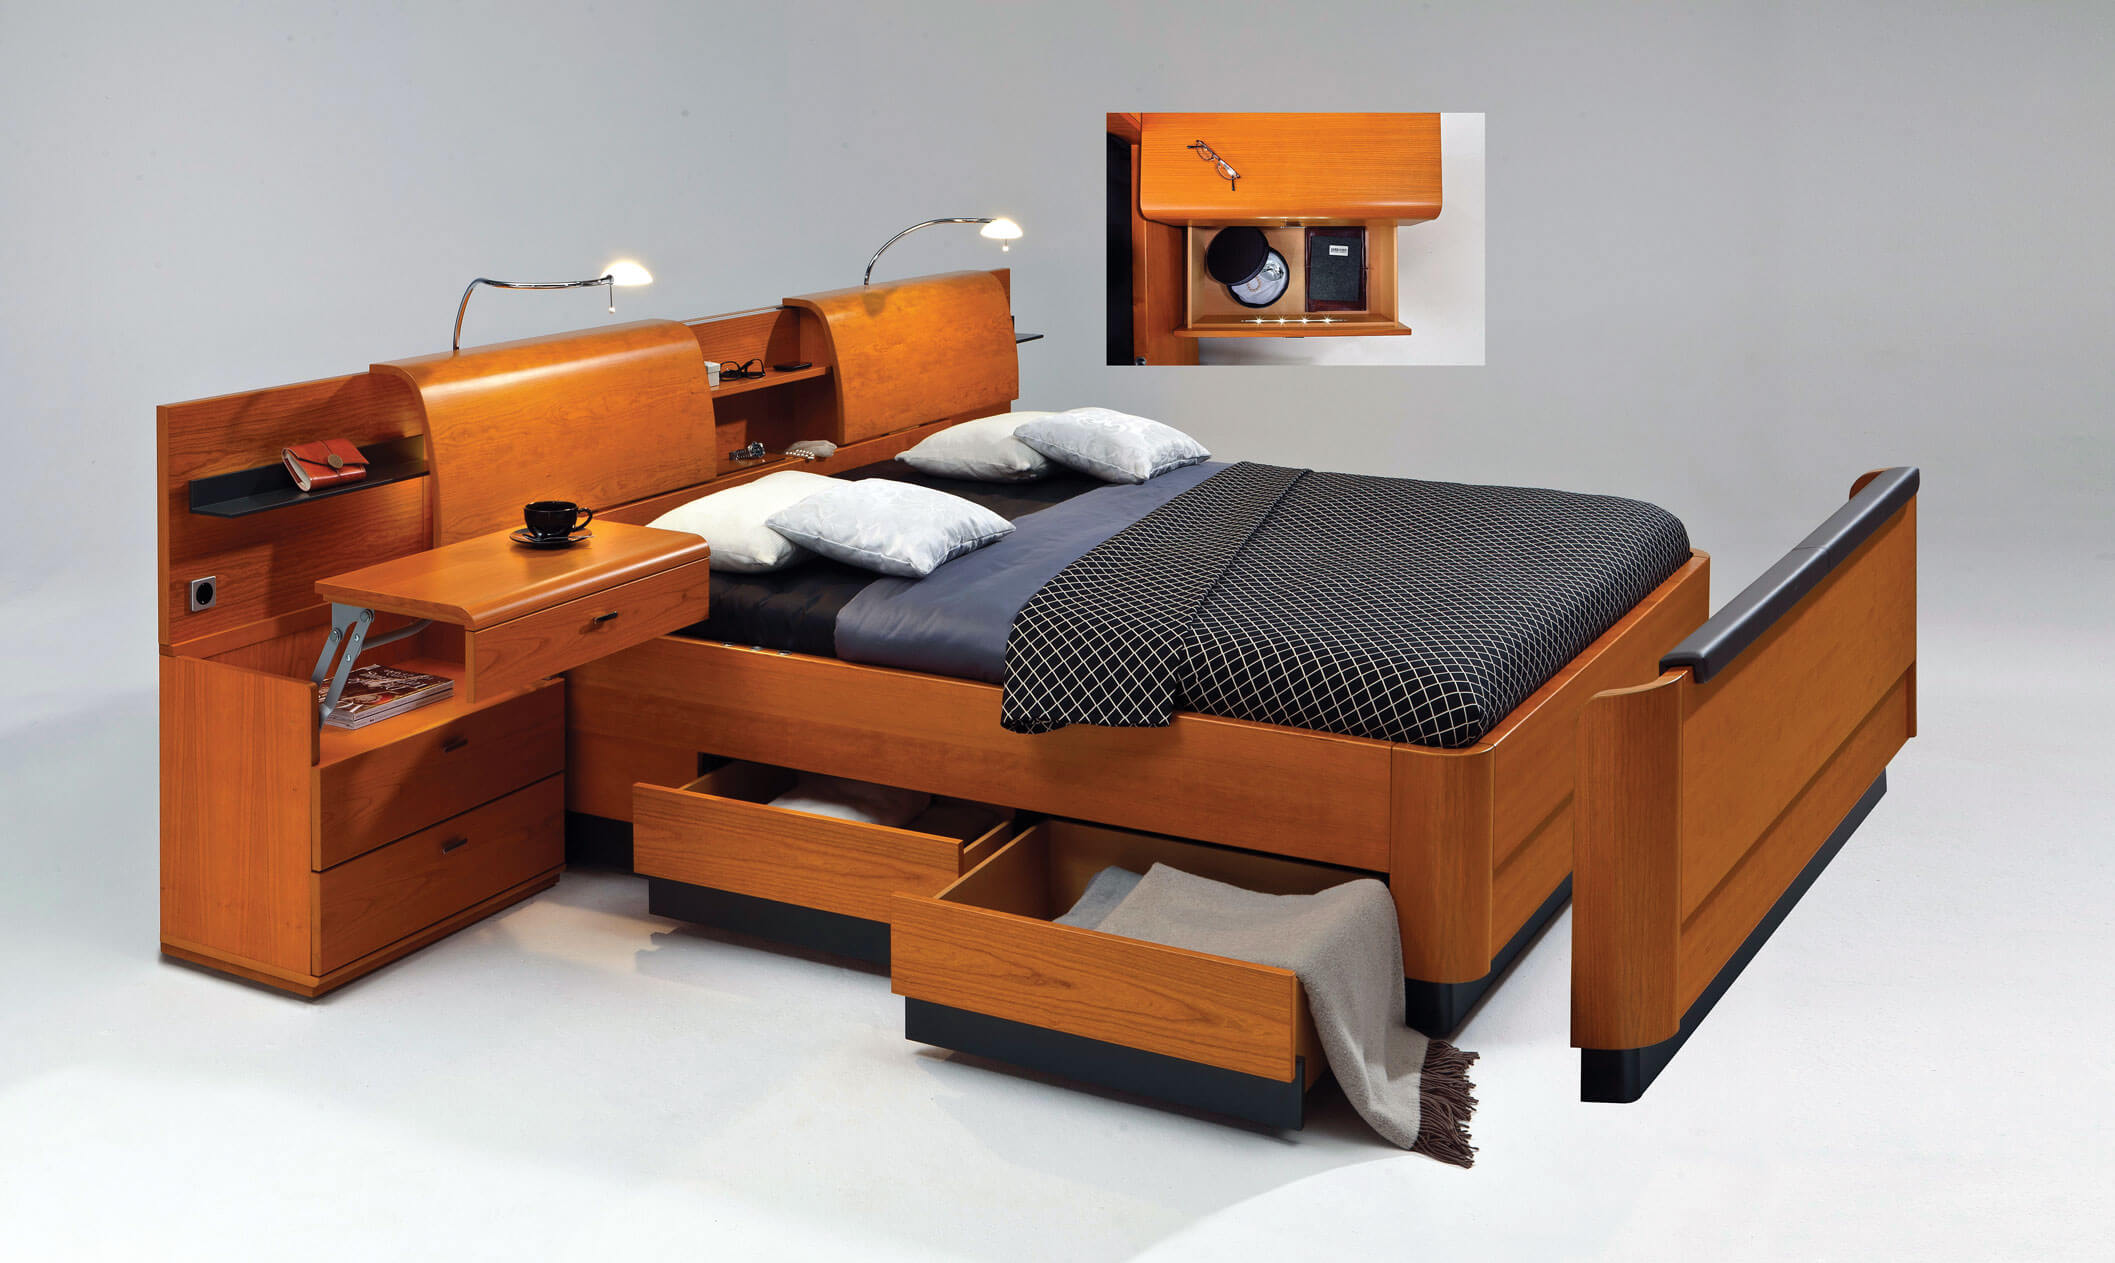 multifunctionalfurniture multifunctional furniture